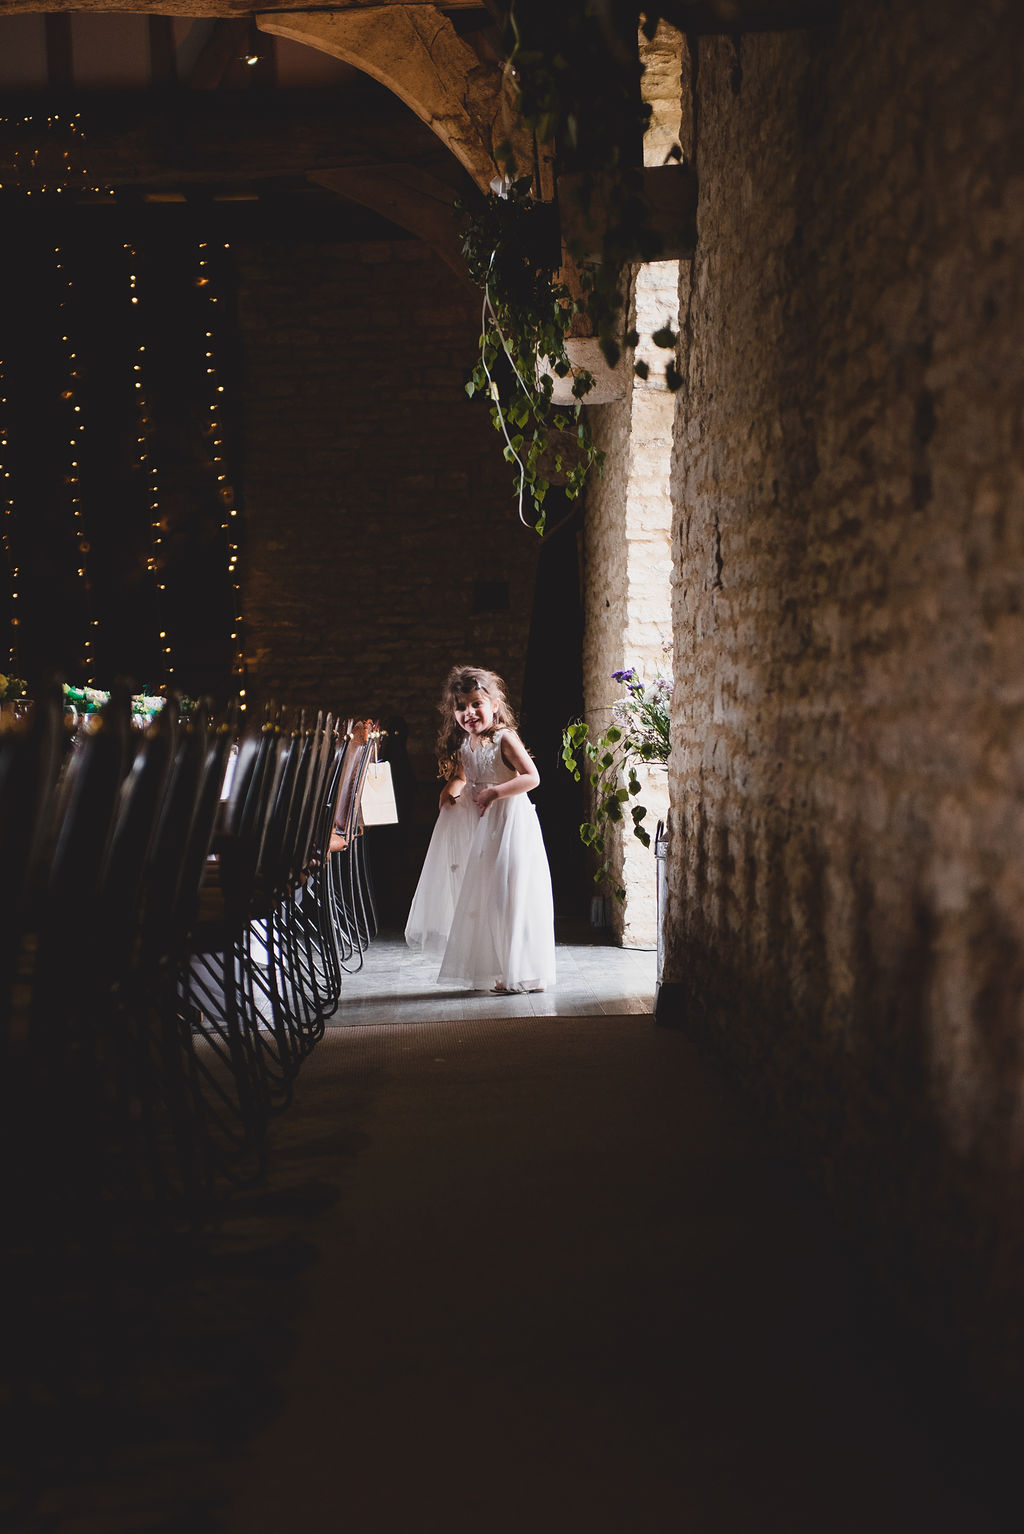 Flower girl gazing down the row of chairs at The Tythe Barn